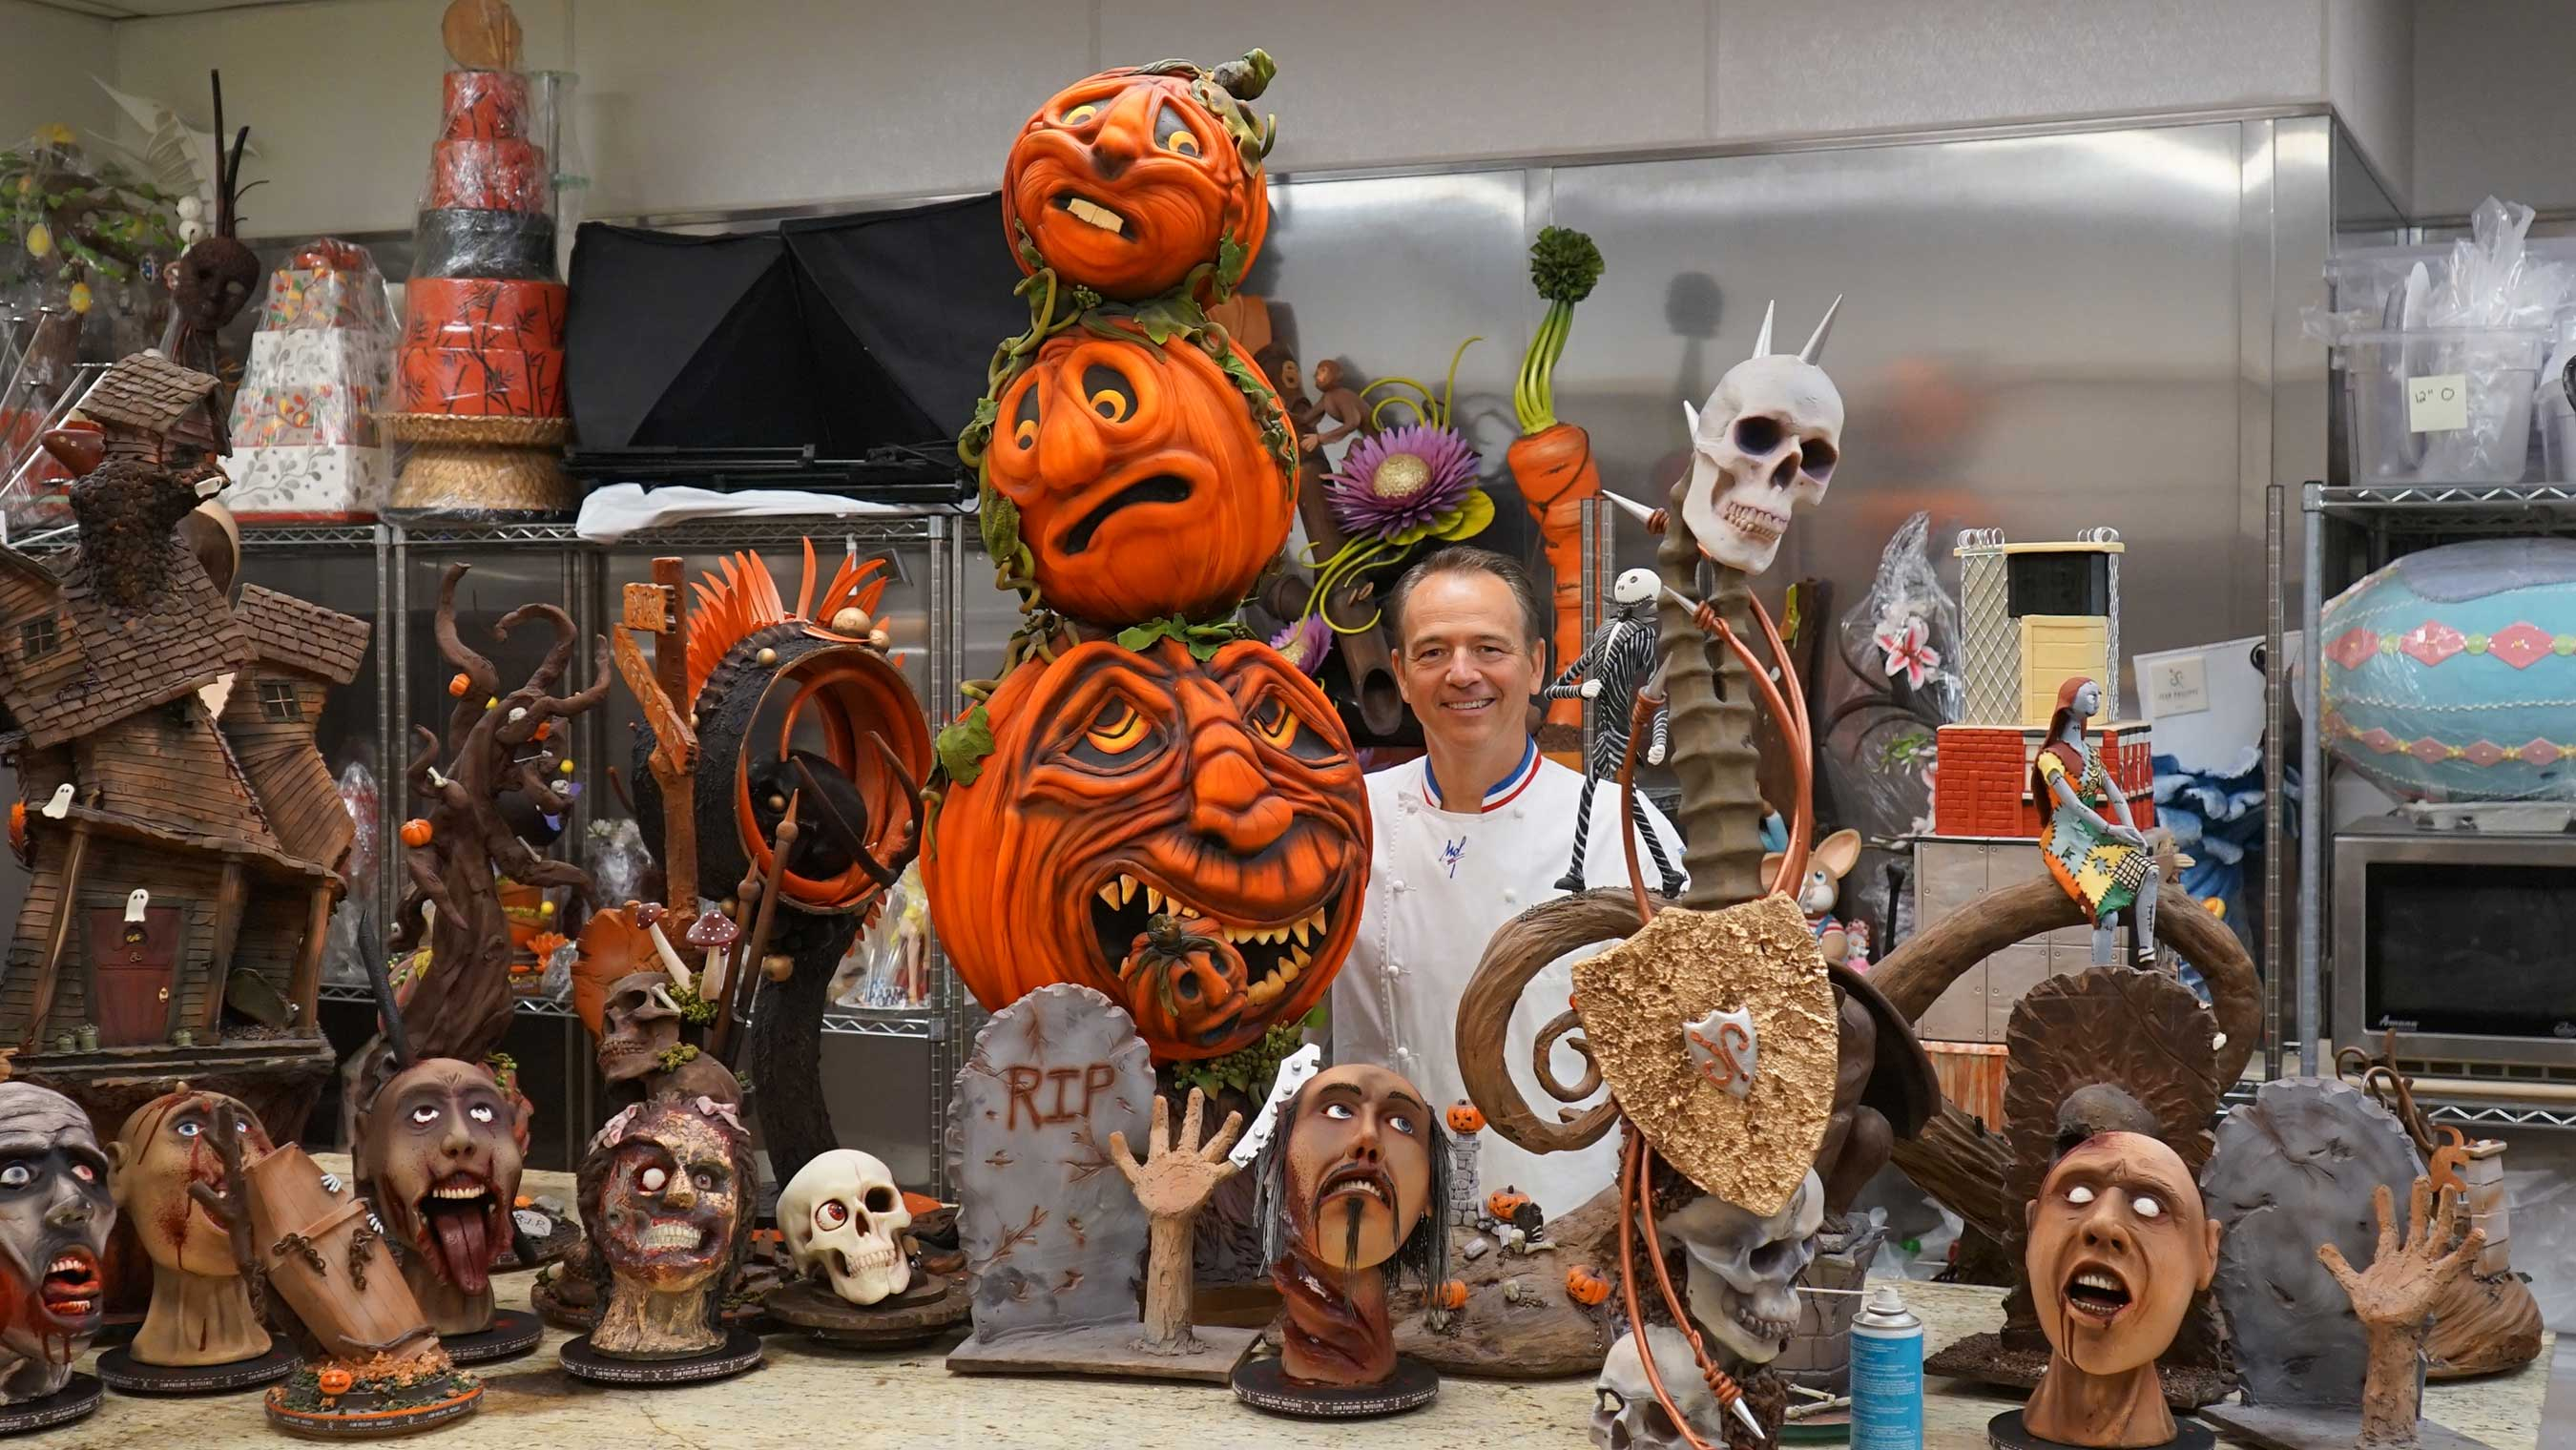 Jean Philippe Maury pictured with various Halloween showpieces